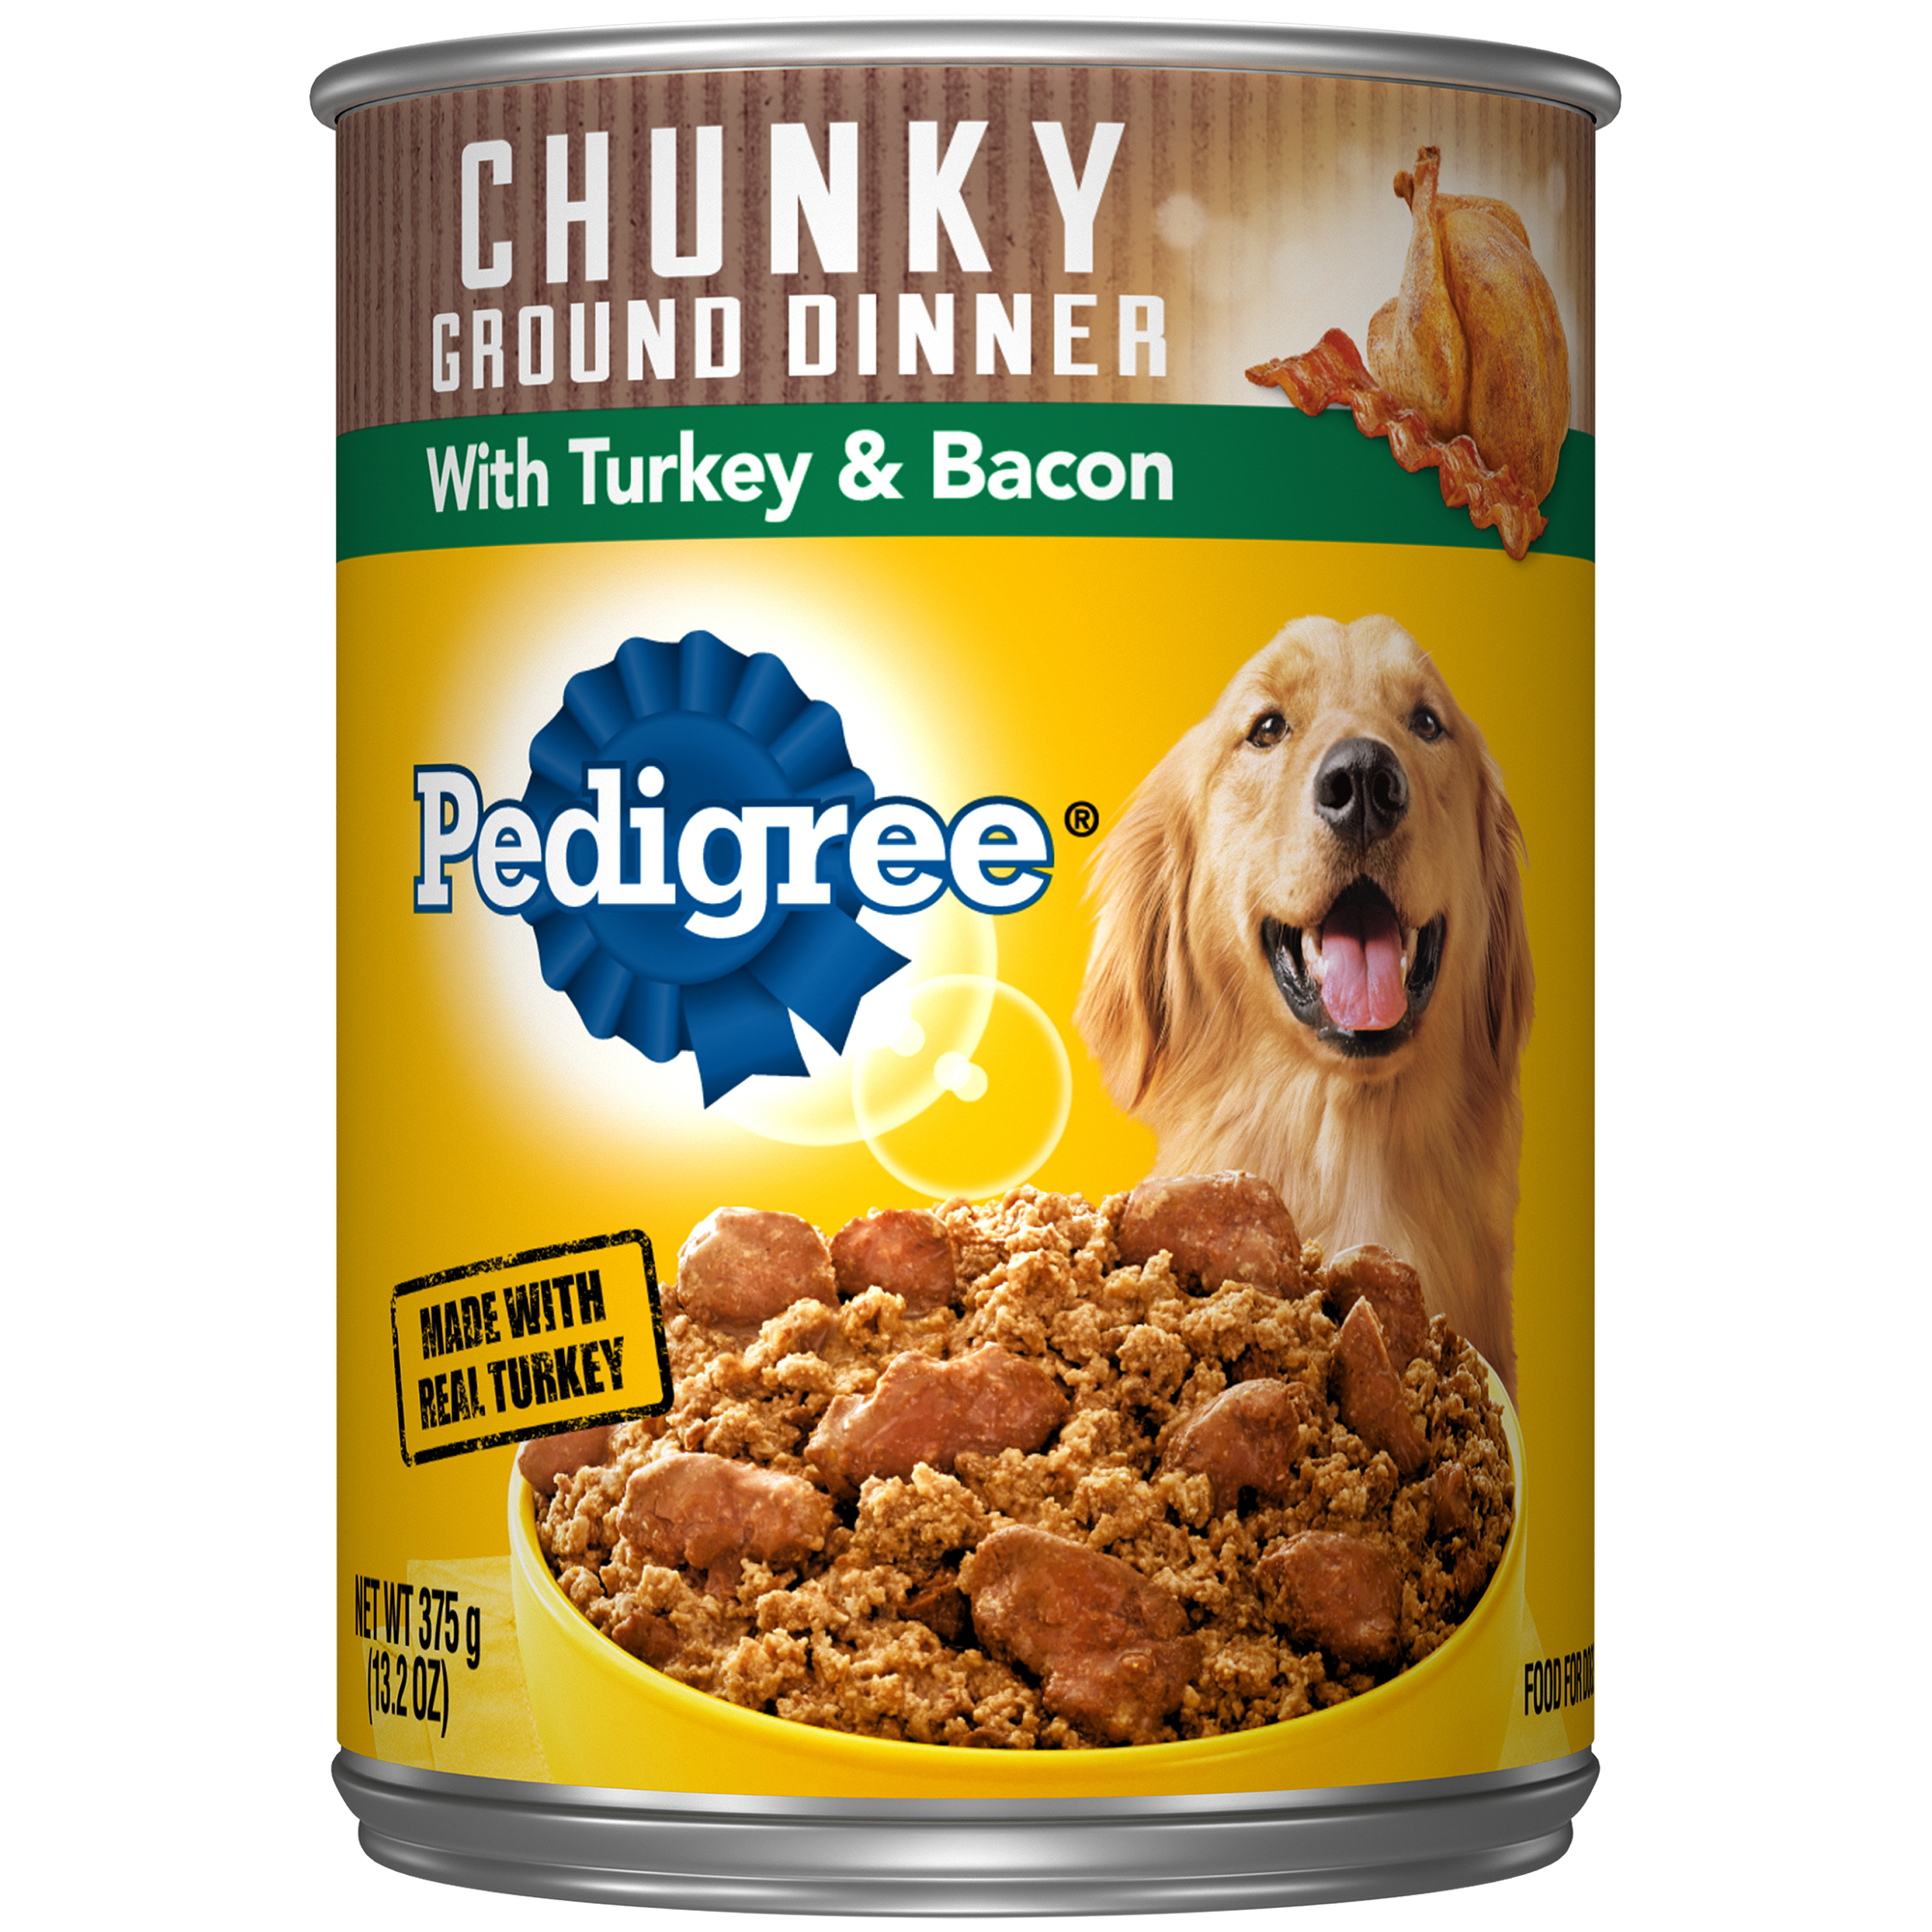 PEDIGREE Chunky Ground Dinner With Turkey & Bacon Adult Canned Wet Dog Food, 13.2 oz. Can